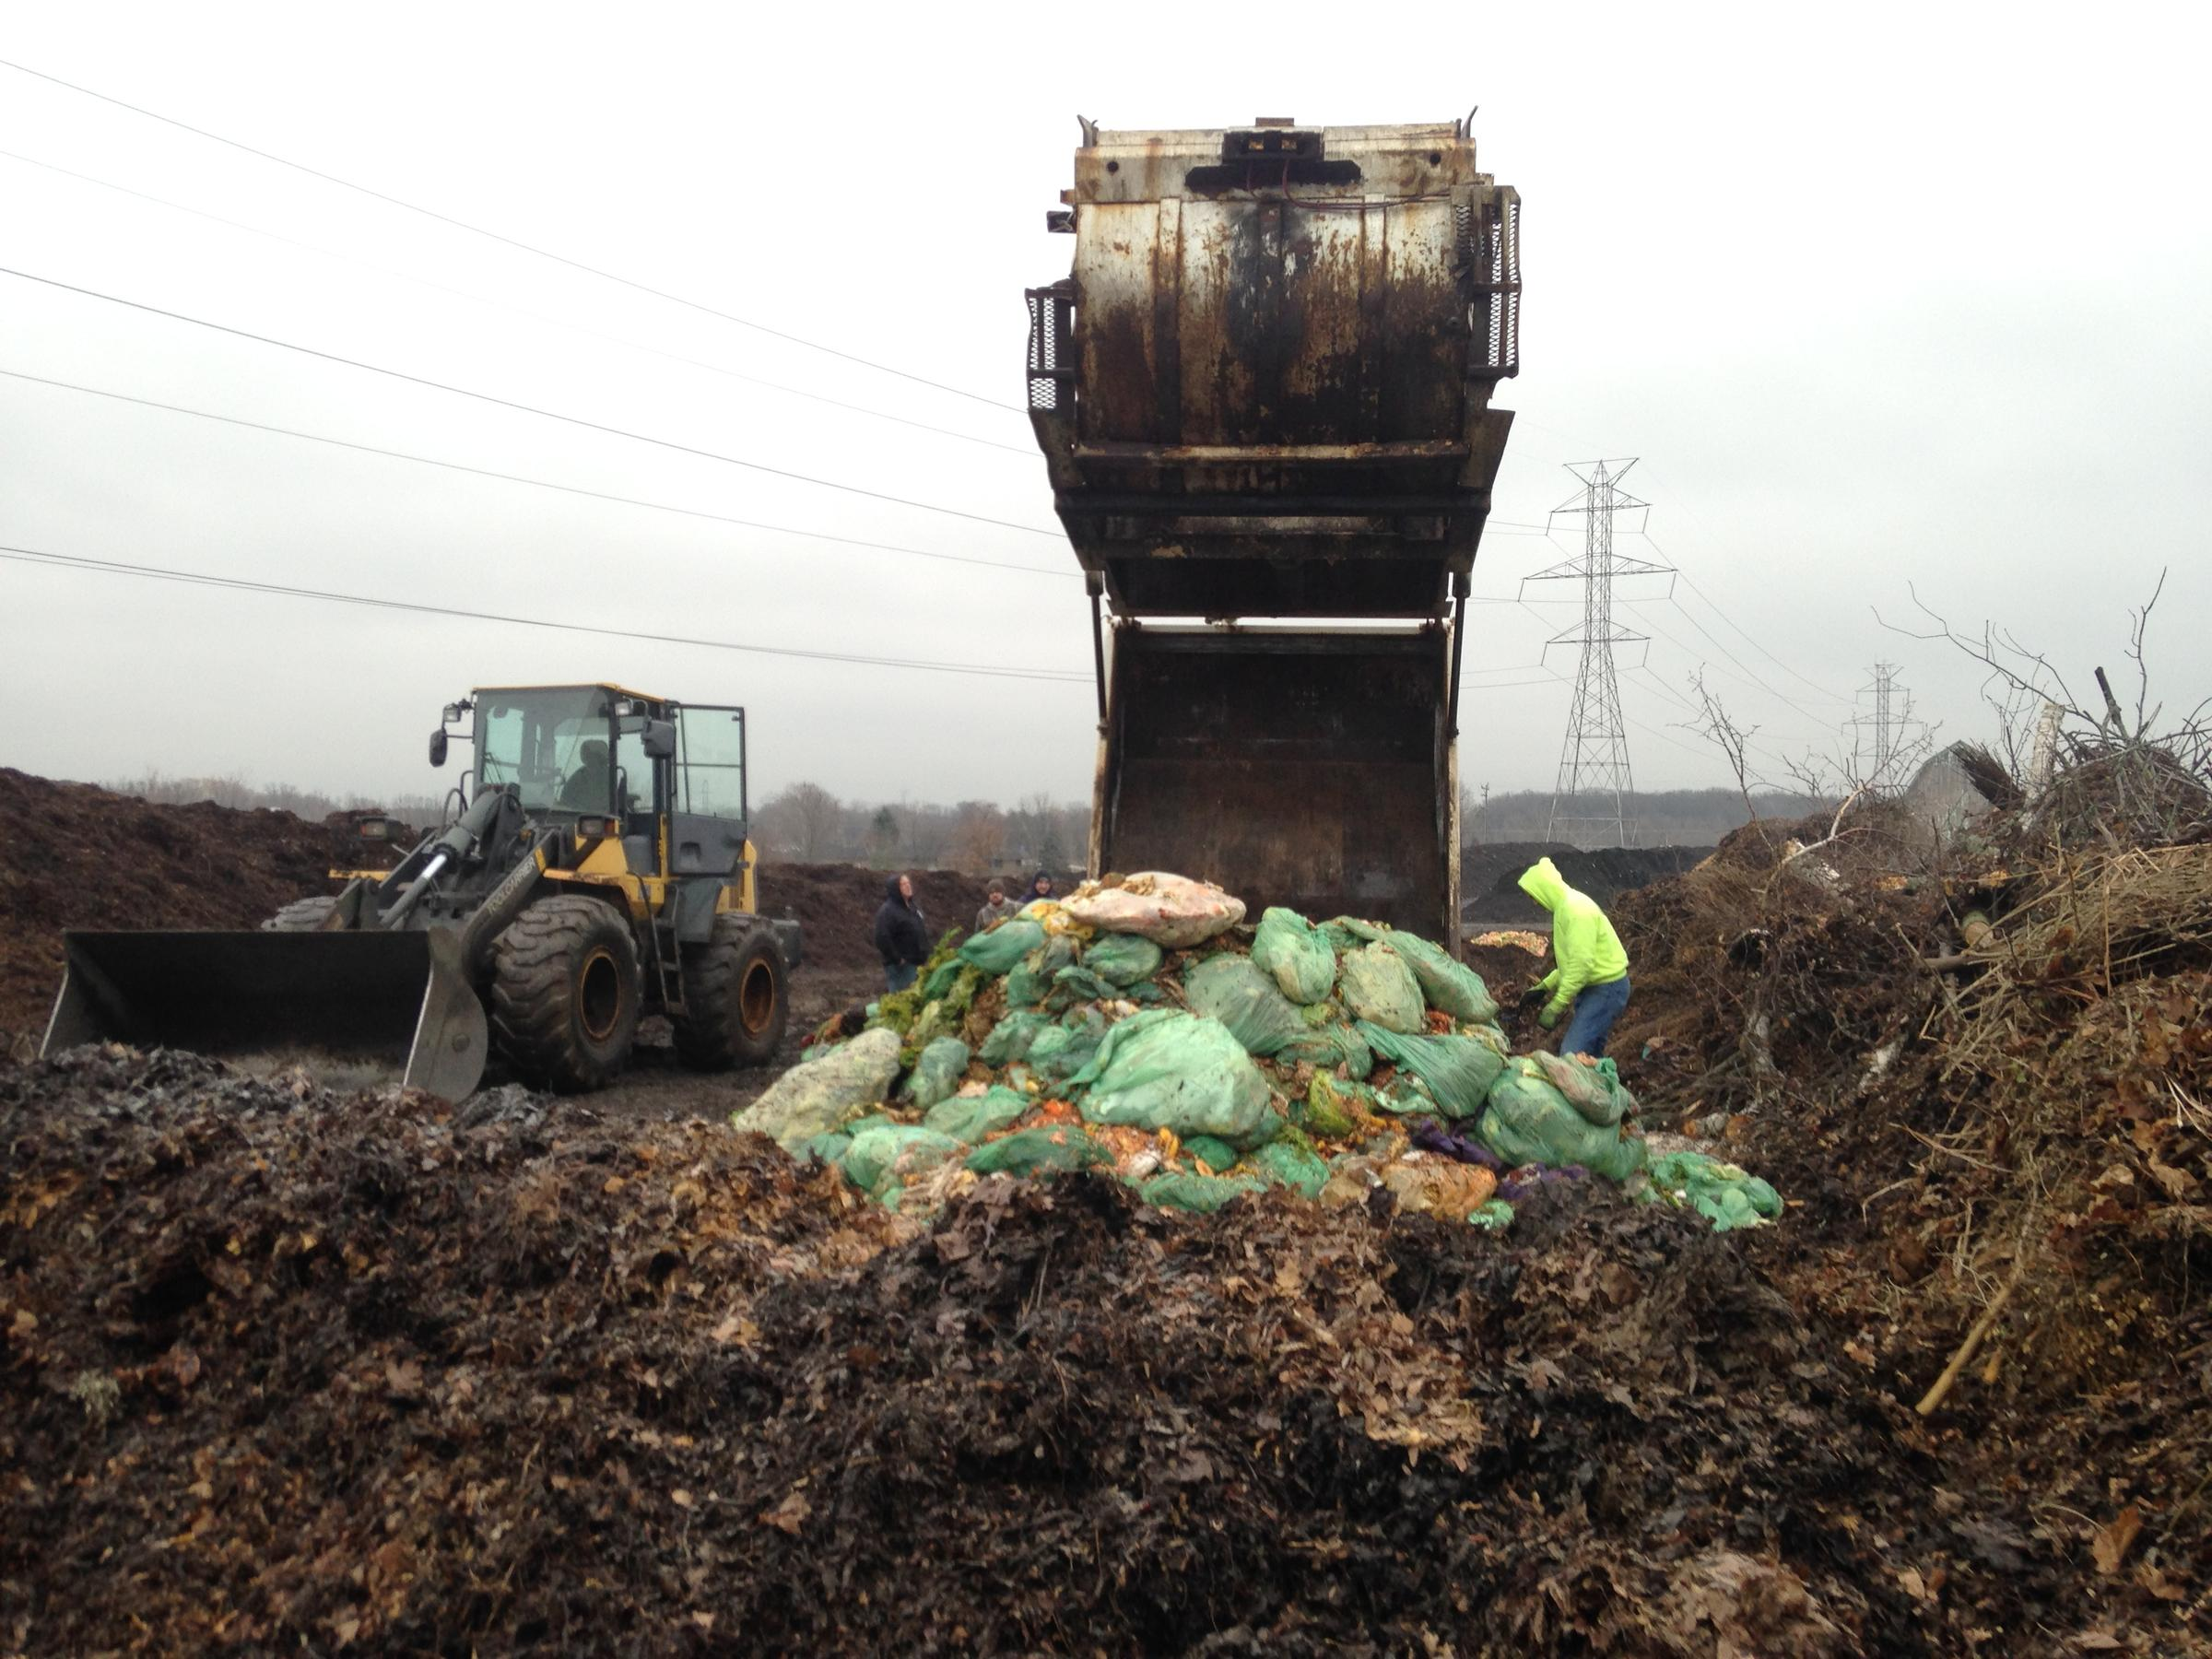 Food waste composting. (WUWM/S. Bence)